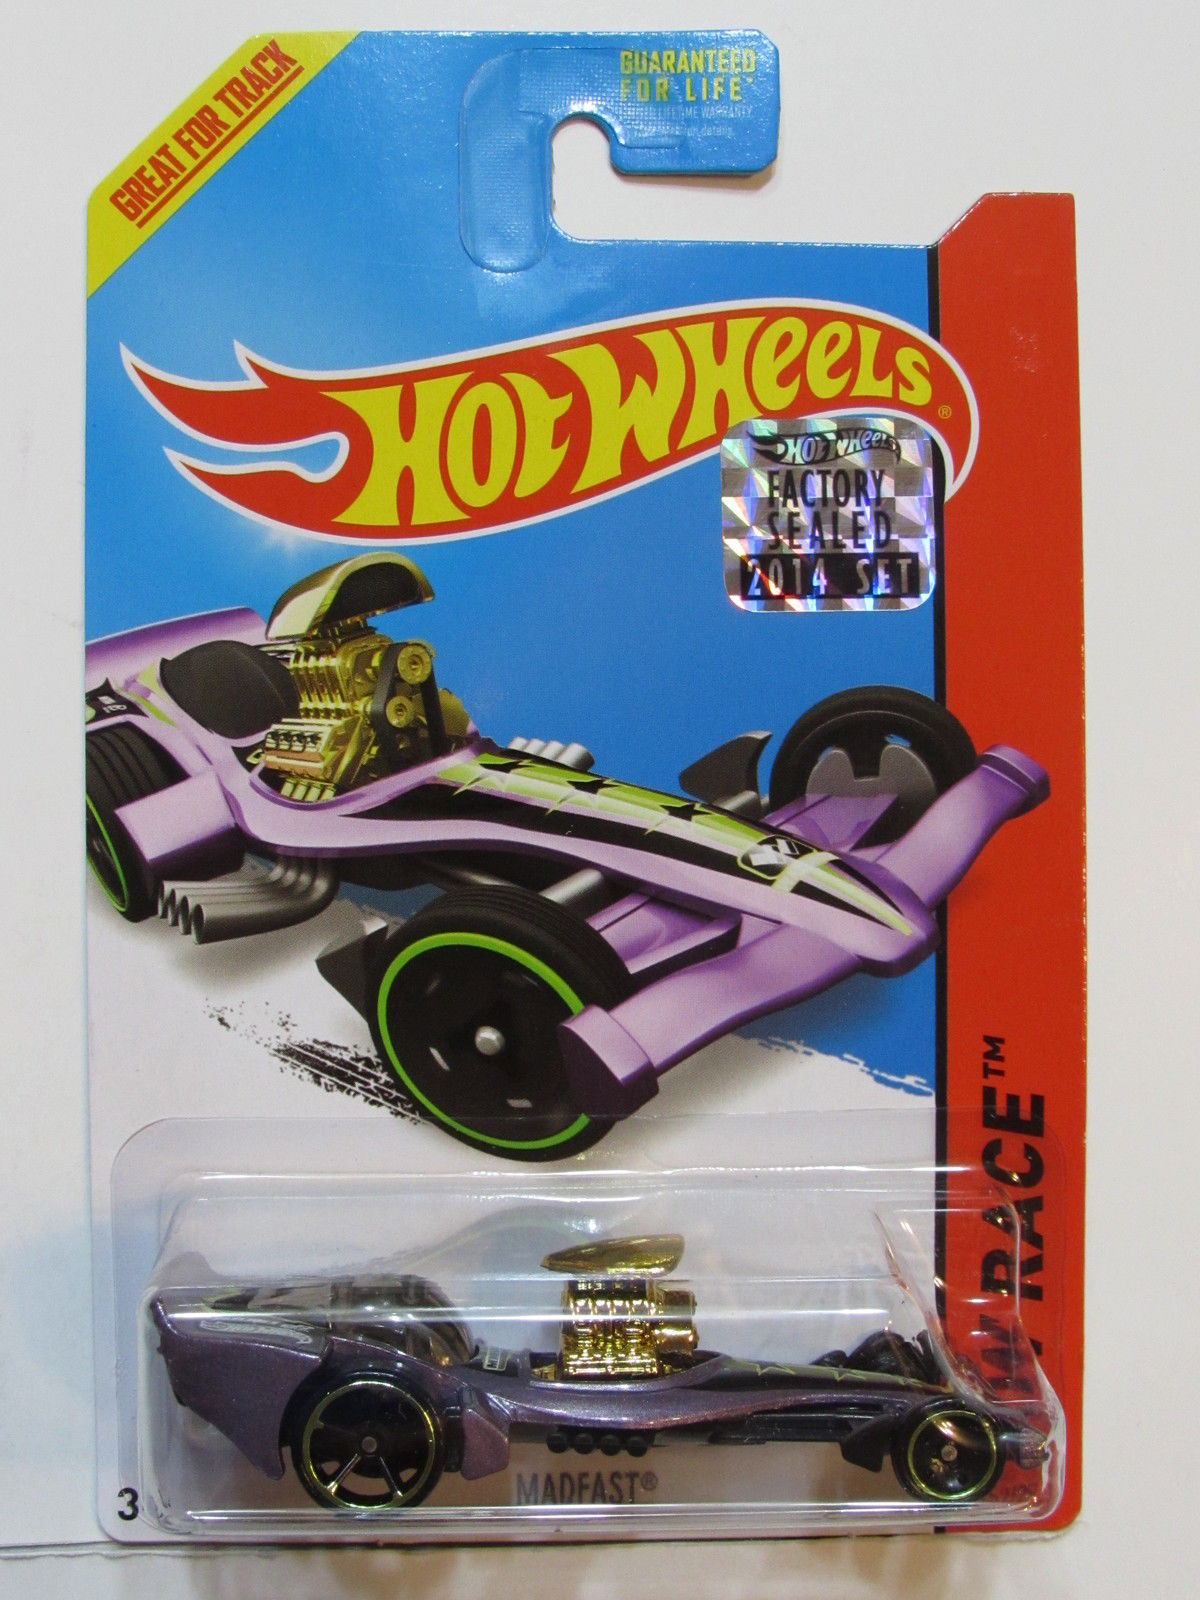 HOT WHEELS 2014 HW RACE MADFAST FACTORY SEALED